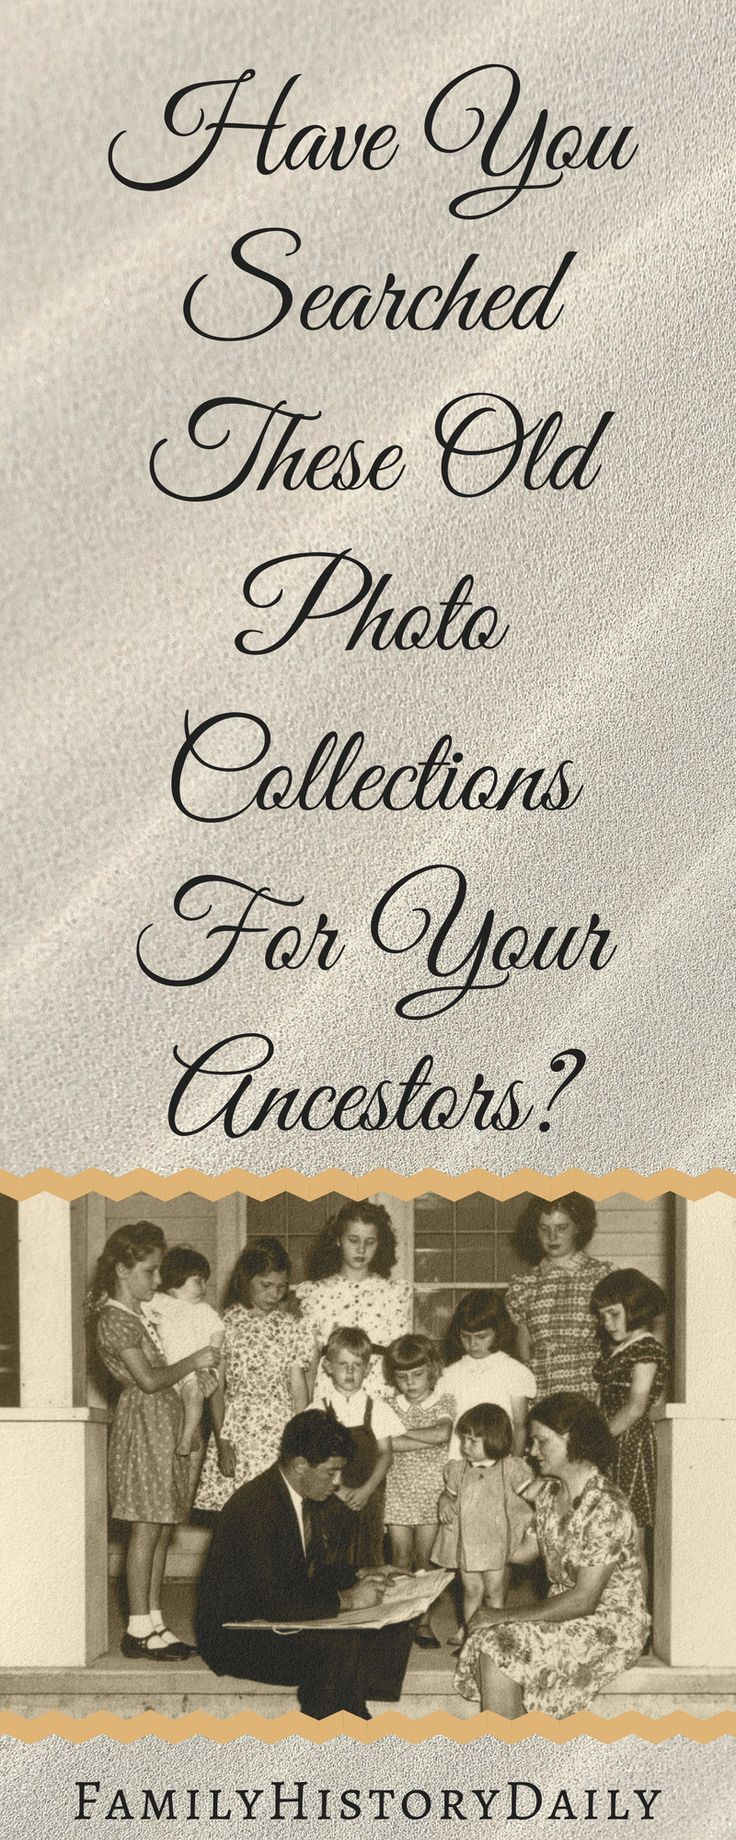 Free Genealogy Resources: These old photo collectinos could unlock important family history details.